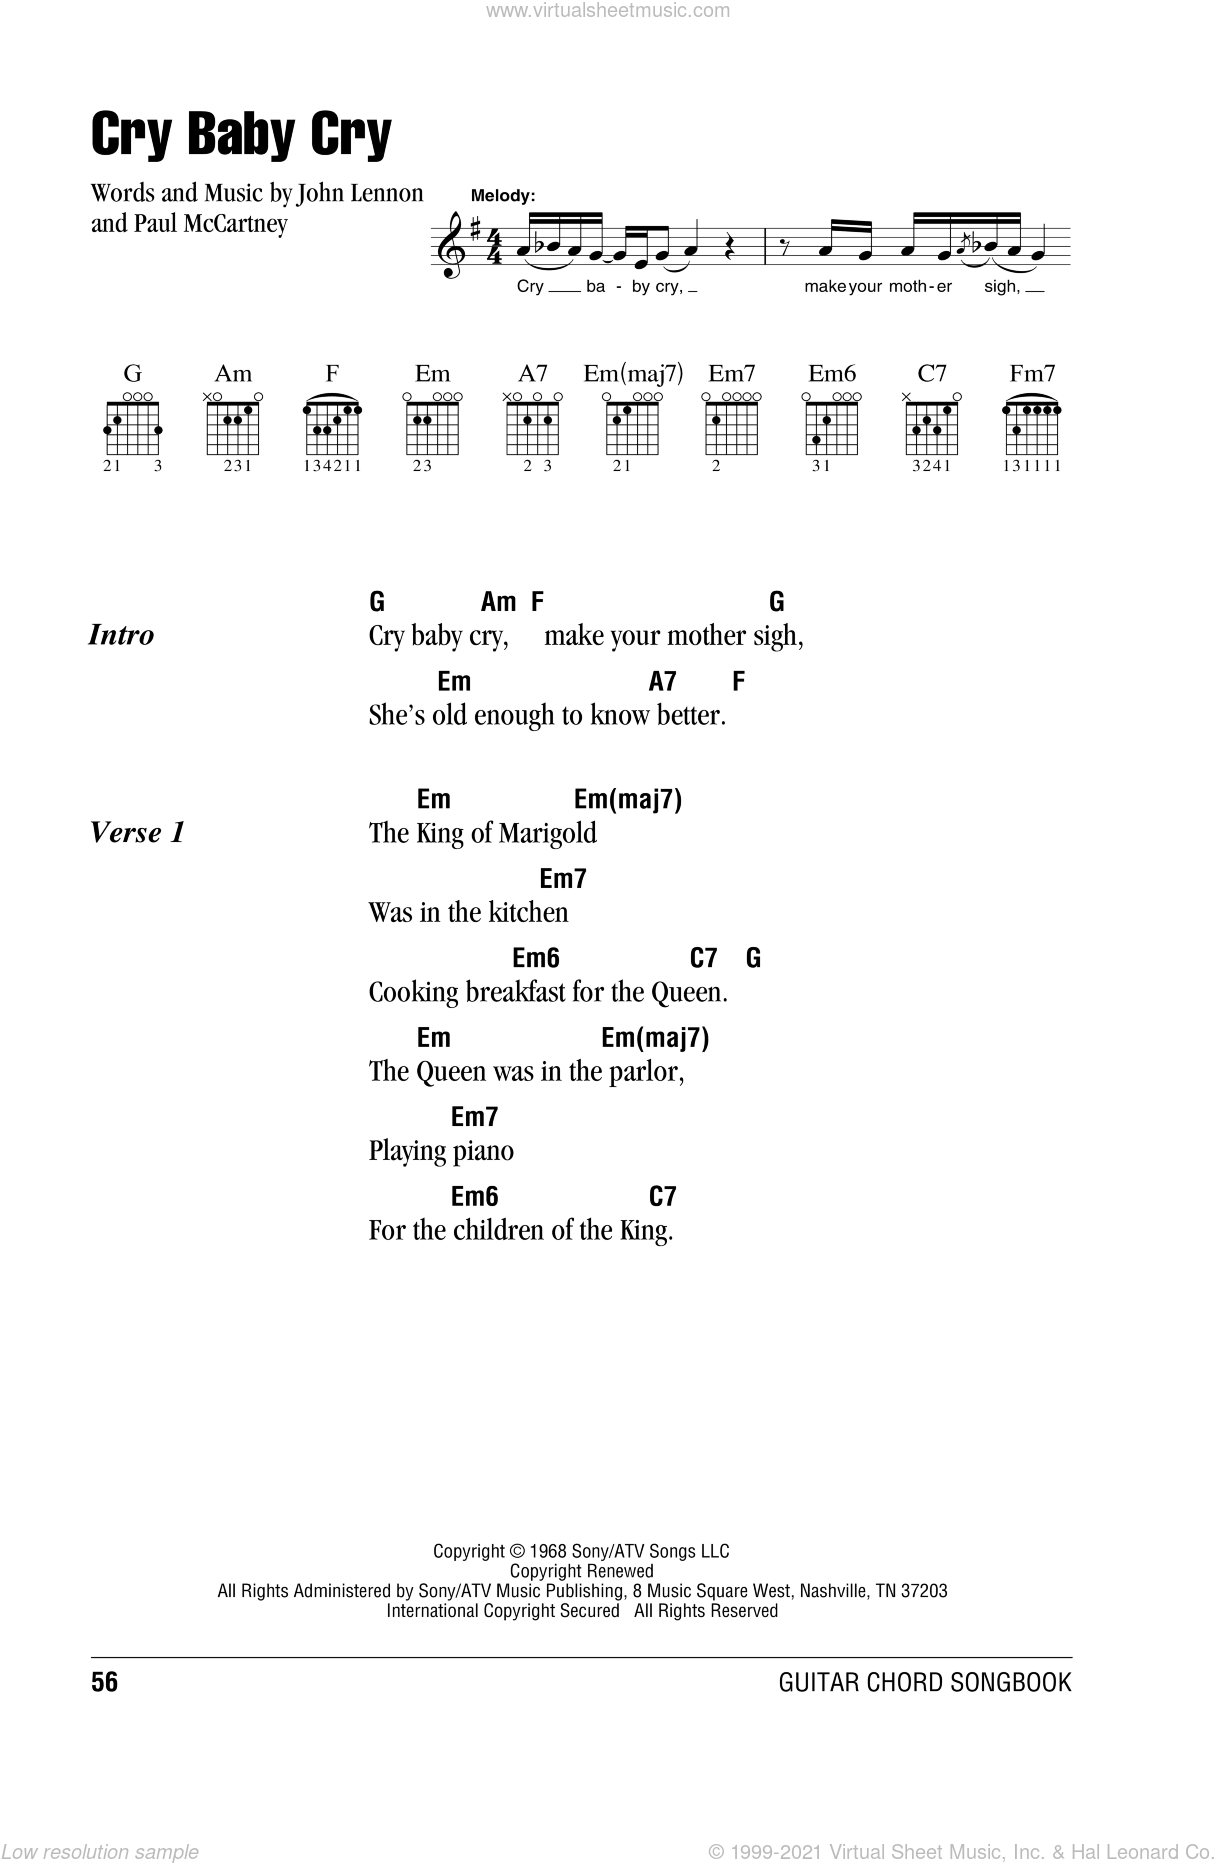 Cry Baby Cry sheet music for guitar (chords) by The Beatles, John Lennon and Paul McCartney, intermediate skill level